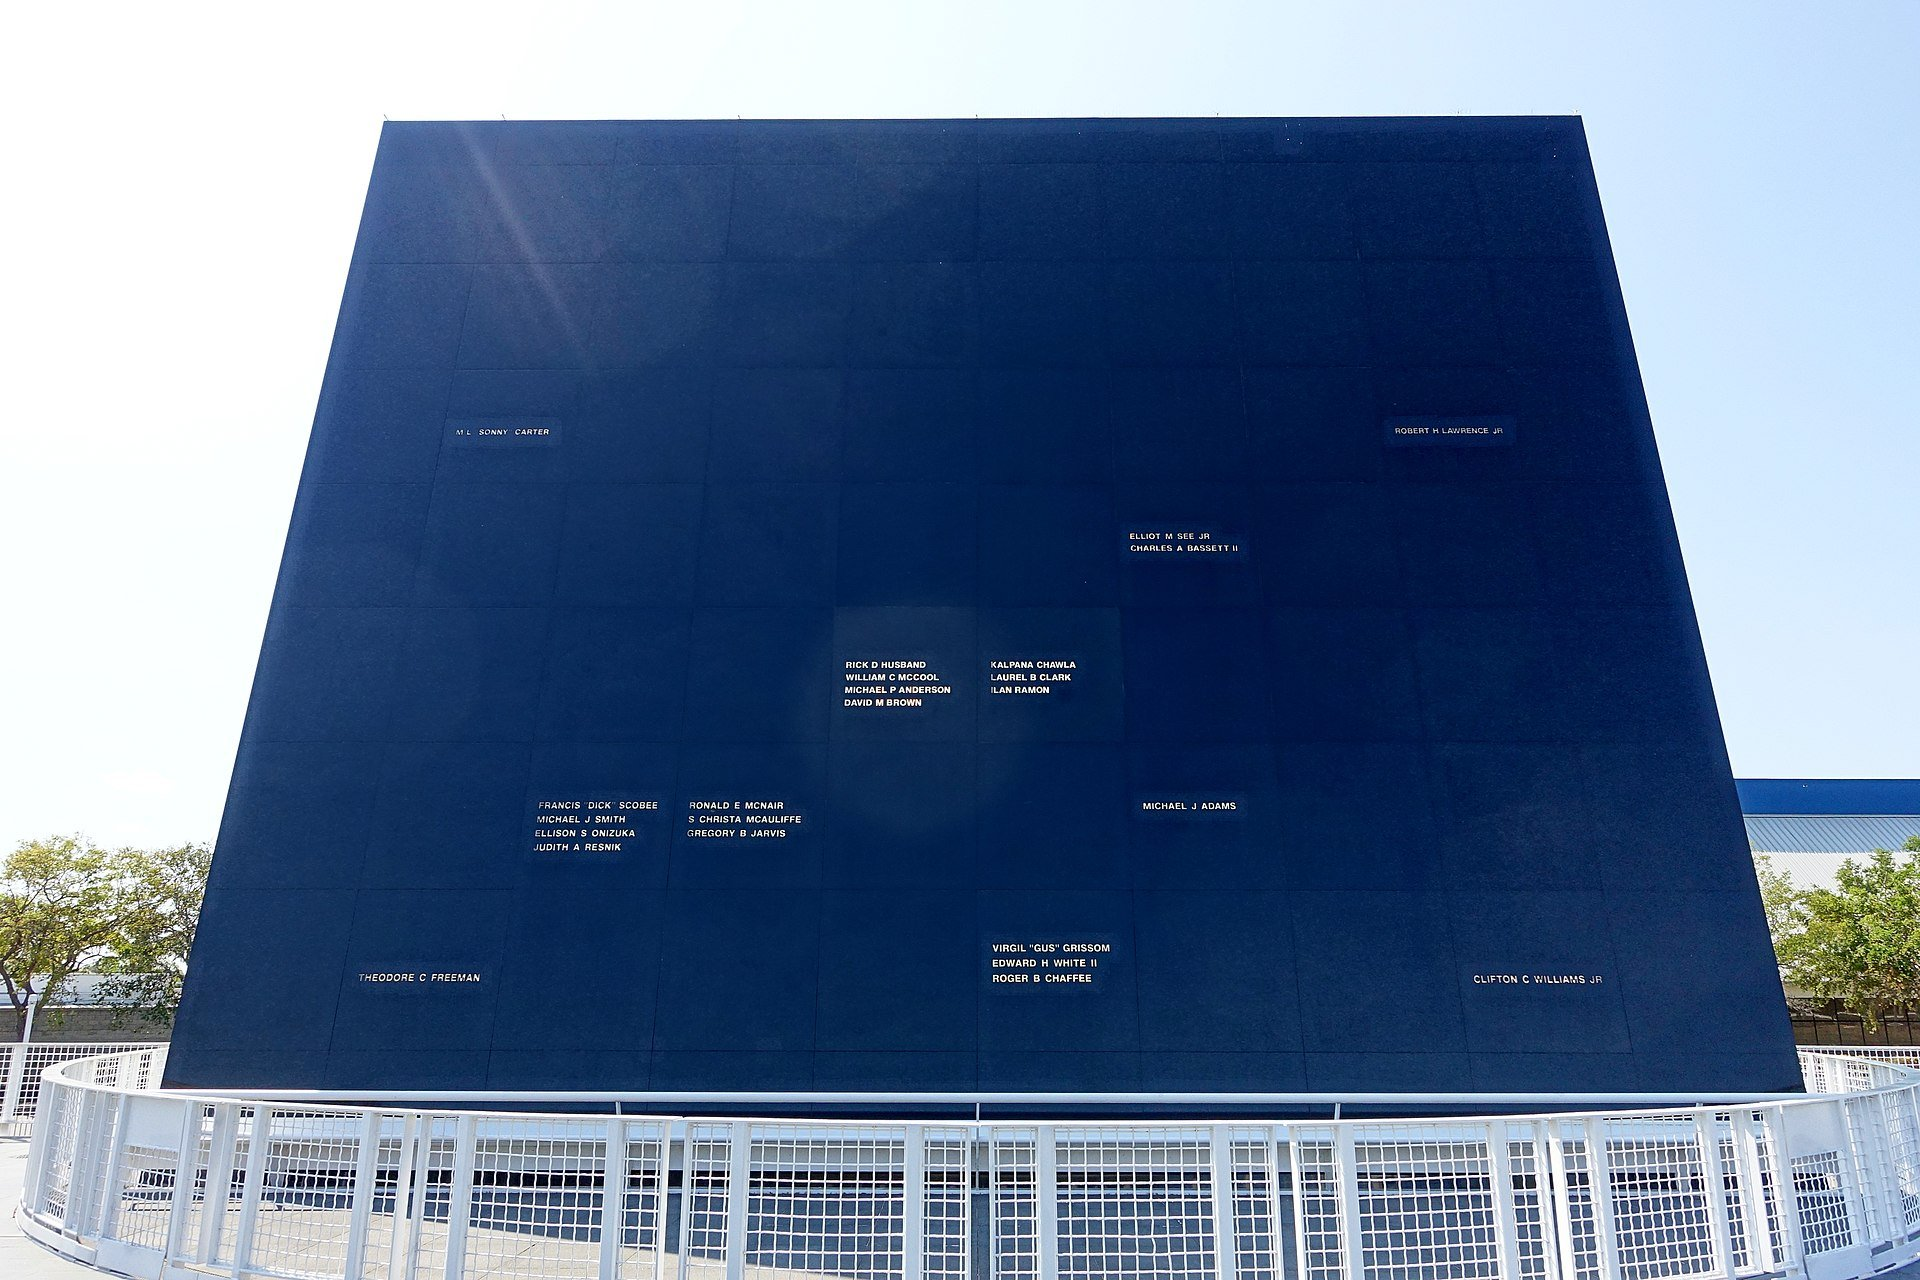 The Space Mirror Memorial at the KSC honors those who died in NASA missions, their names engraved in the black granite and reflected by sunlight. Courtesy of Wikimedia Commons.